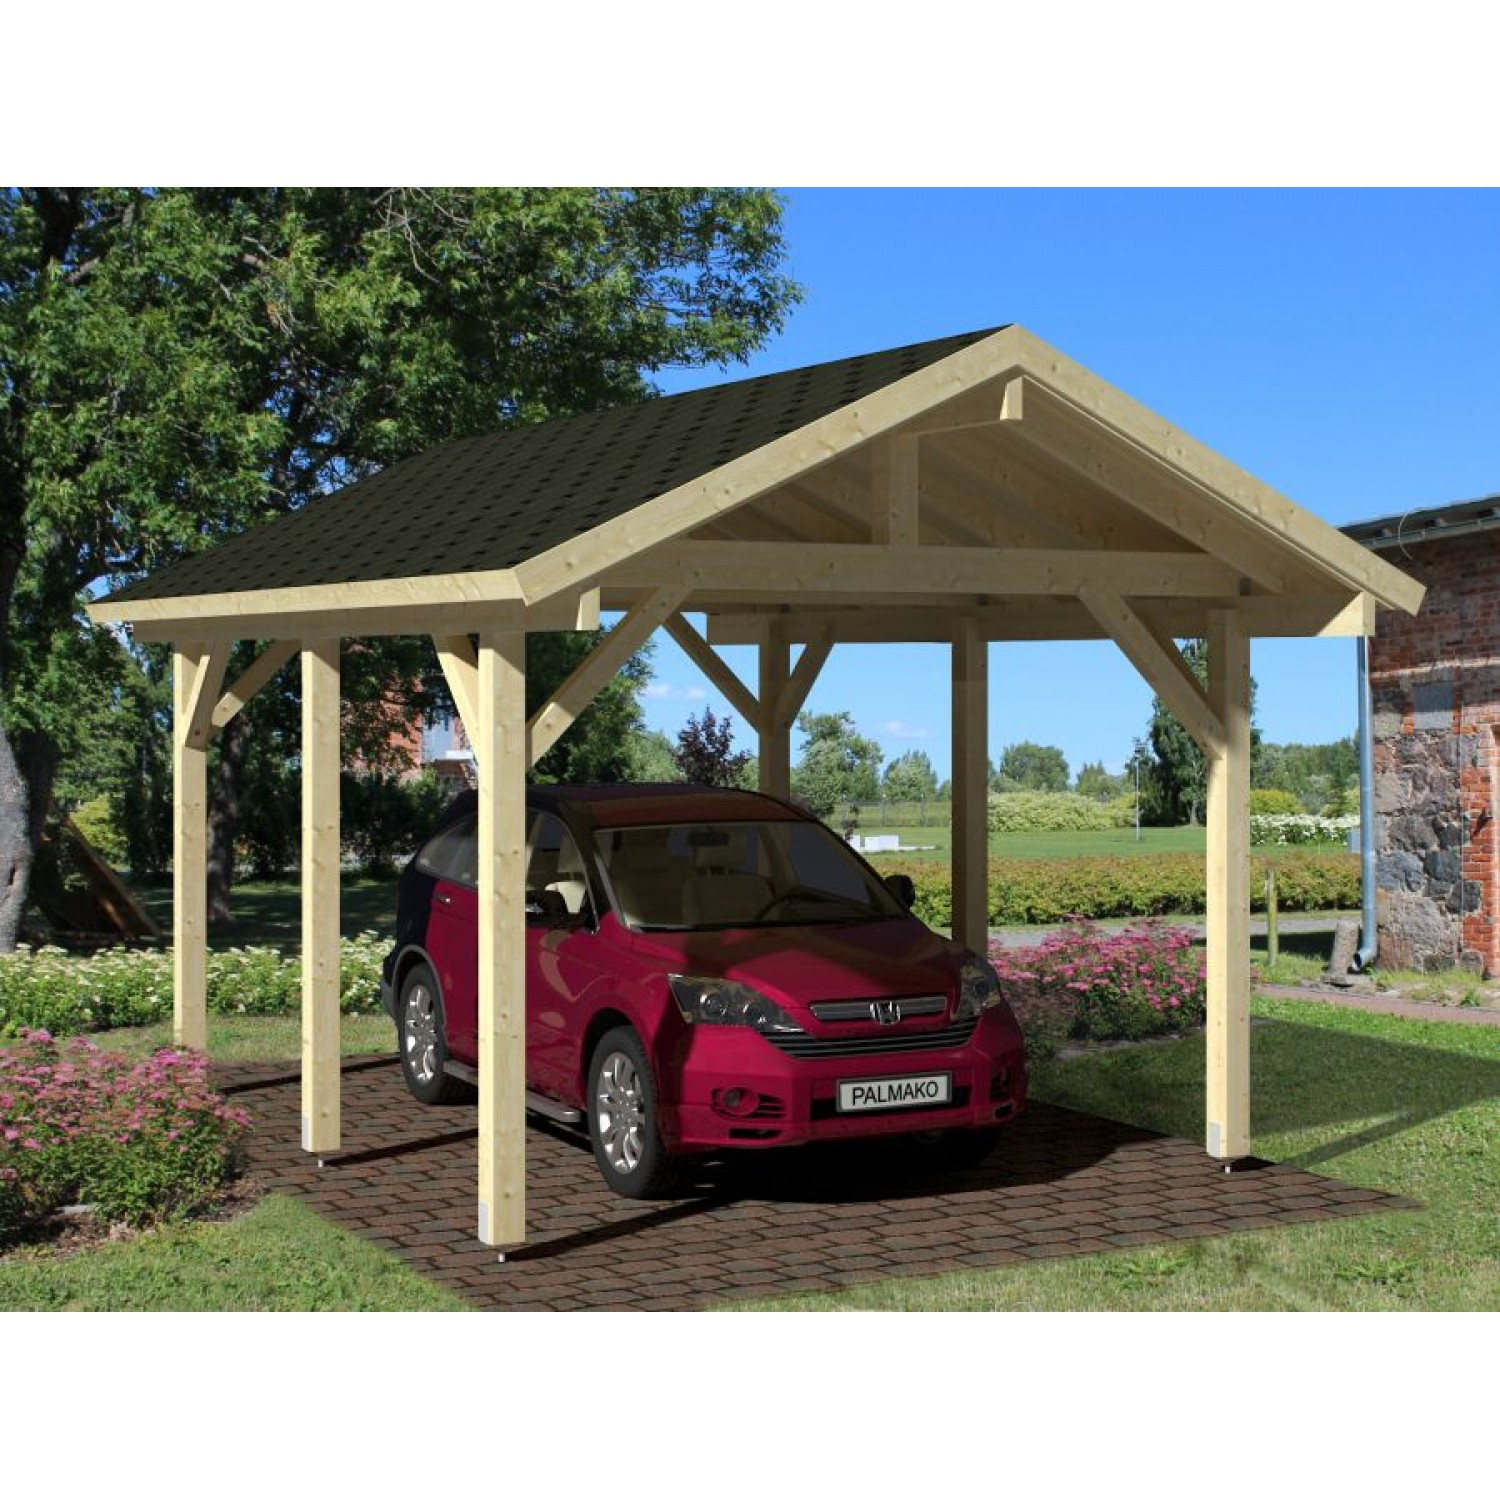 Carports And Garages Of Palmako Carport Robert